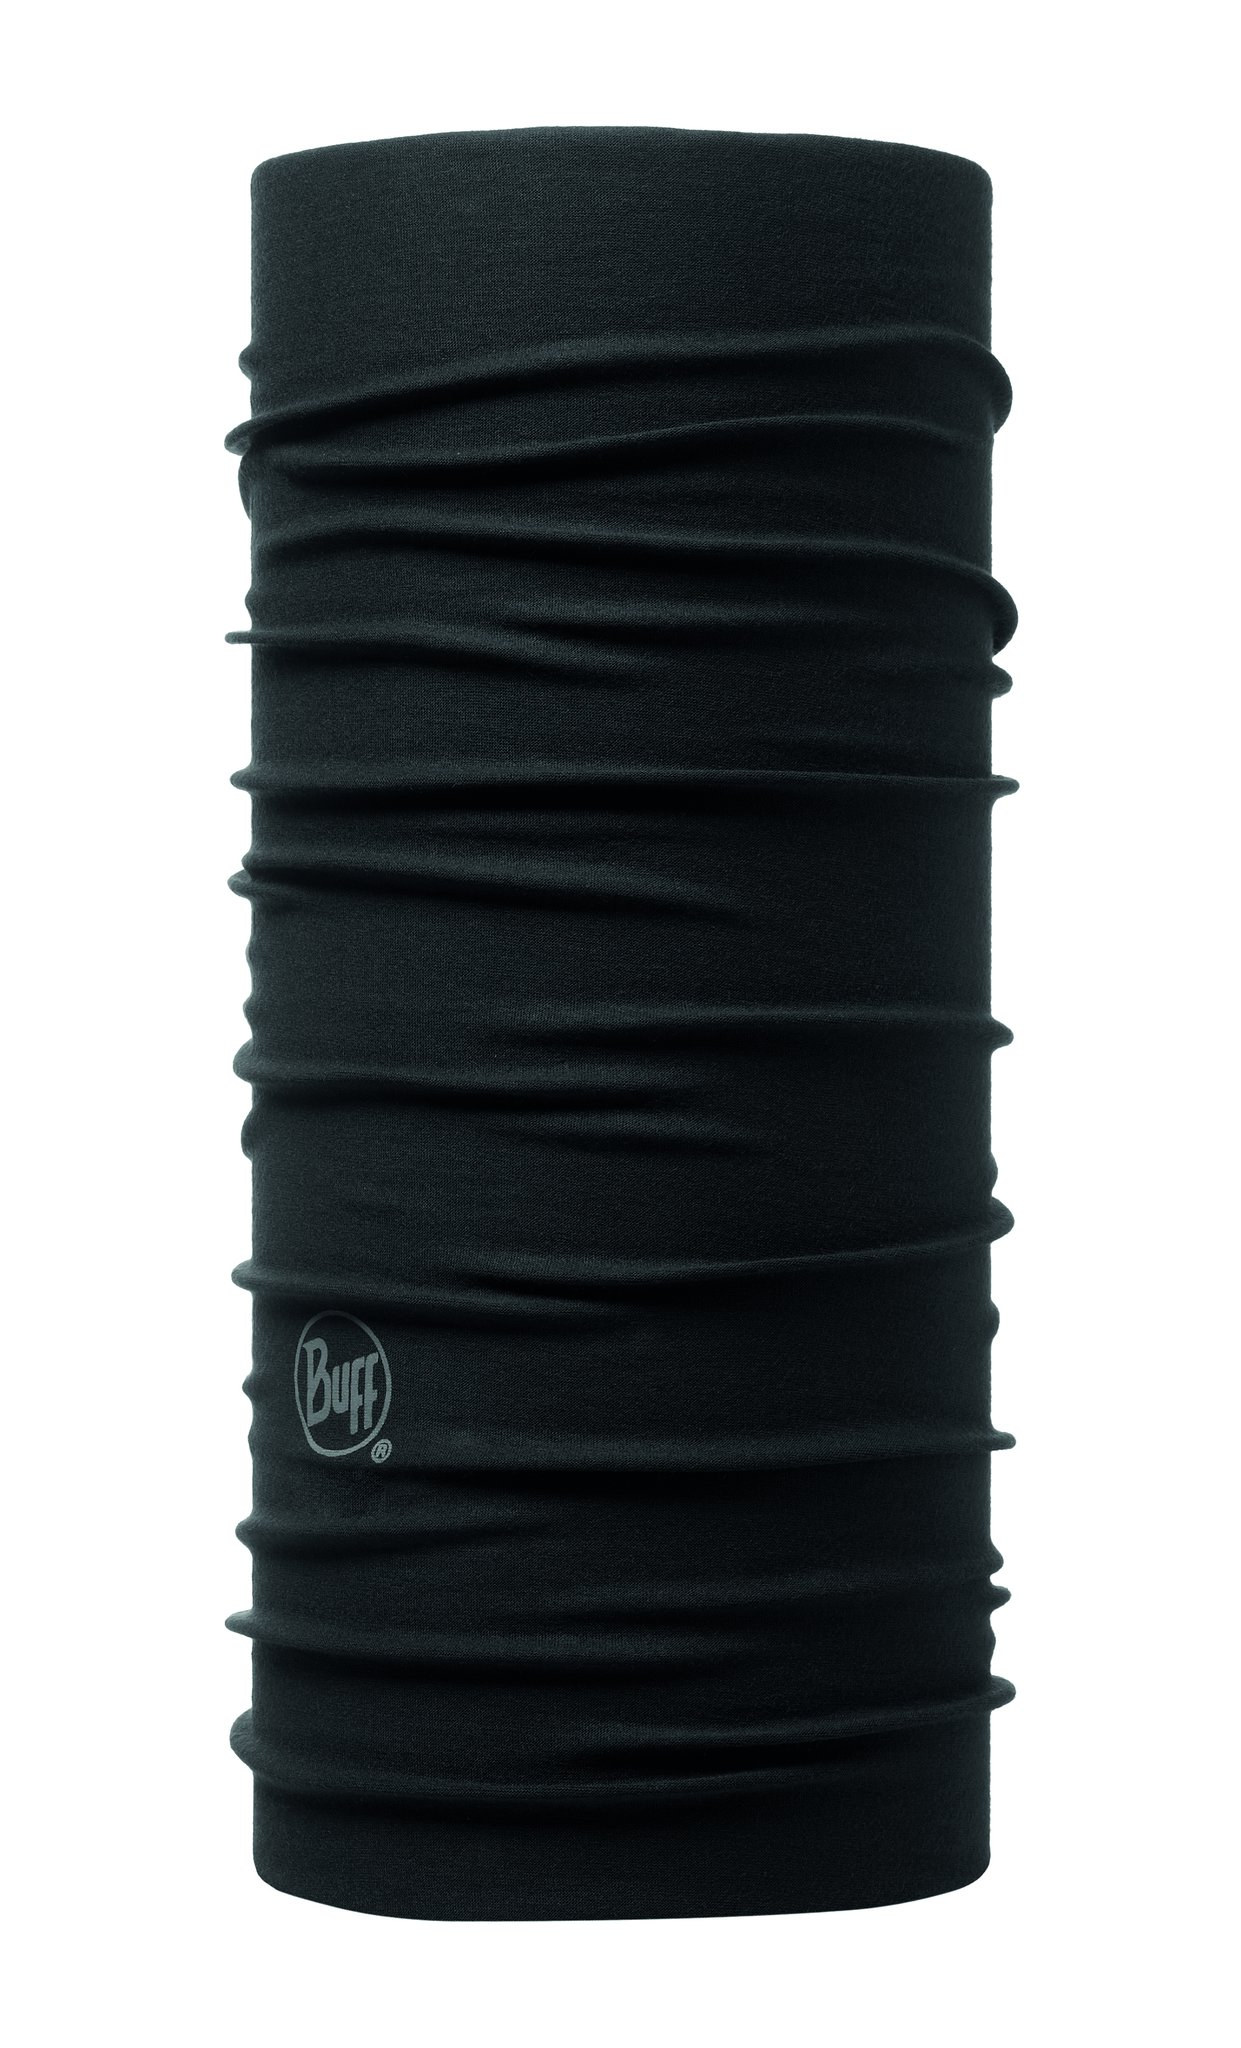 Бандана Original Buff Solid Black 117818 (53-62)